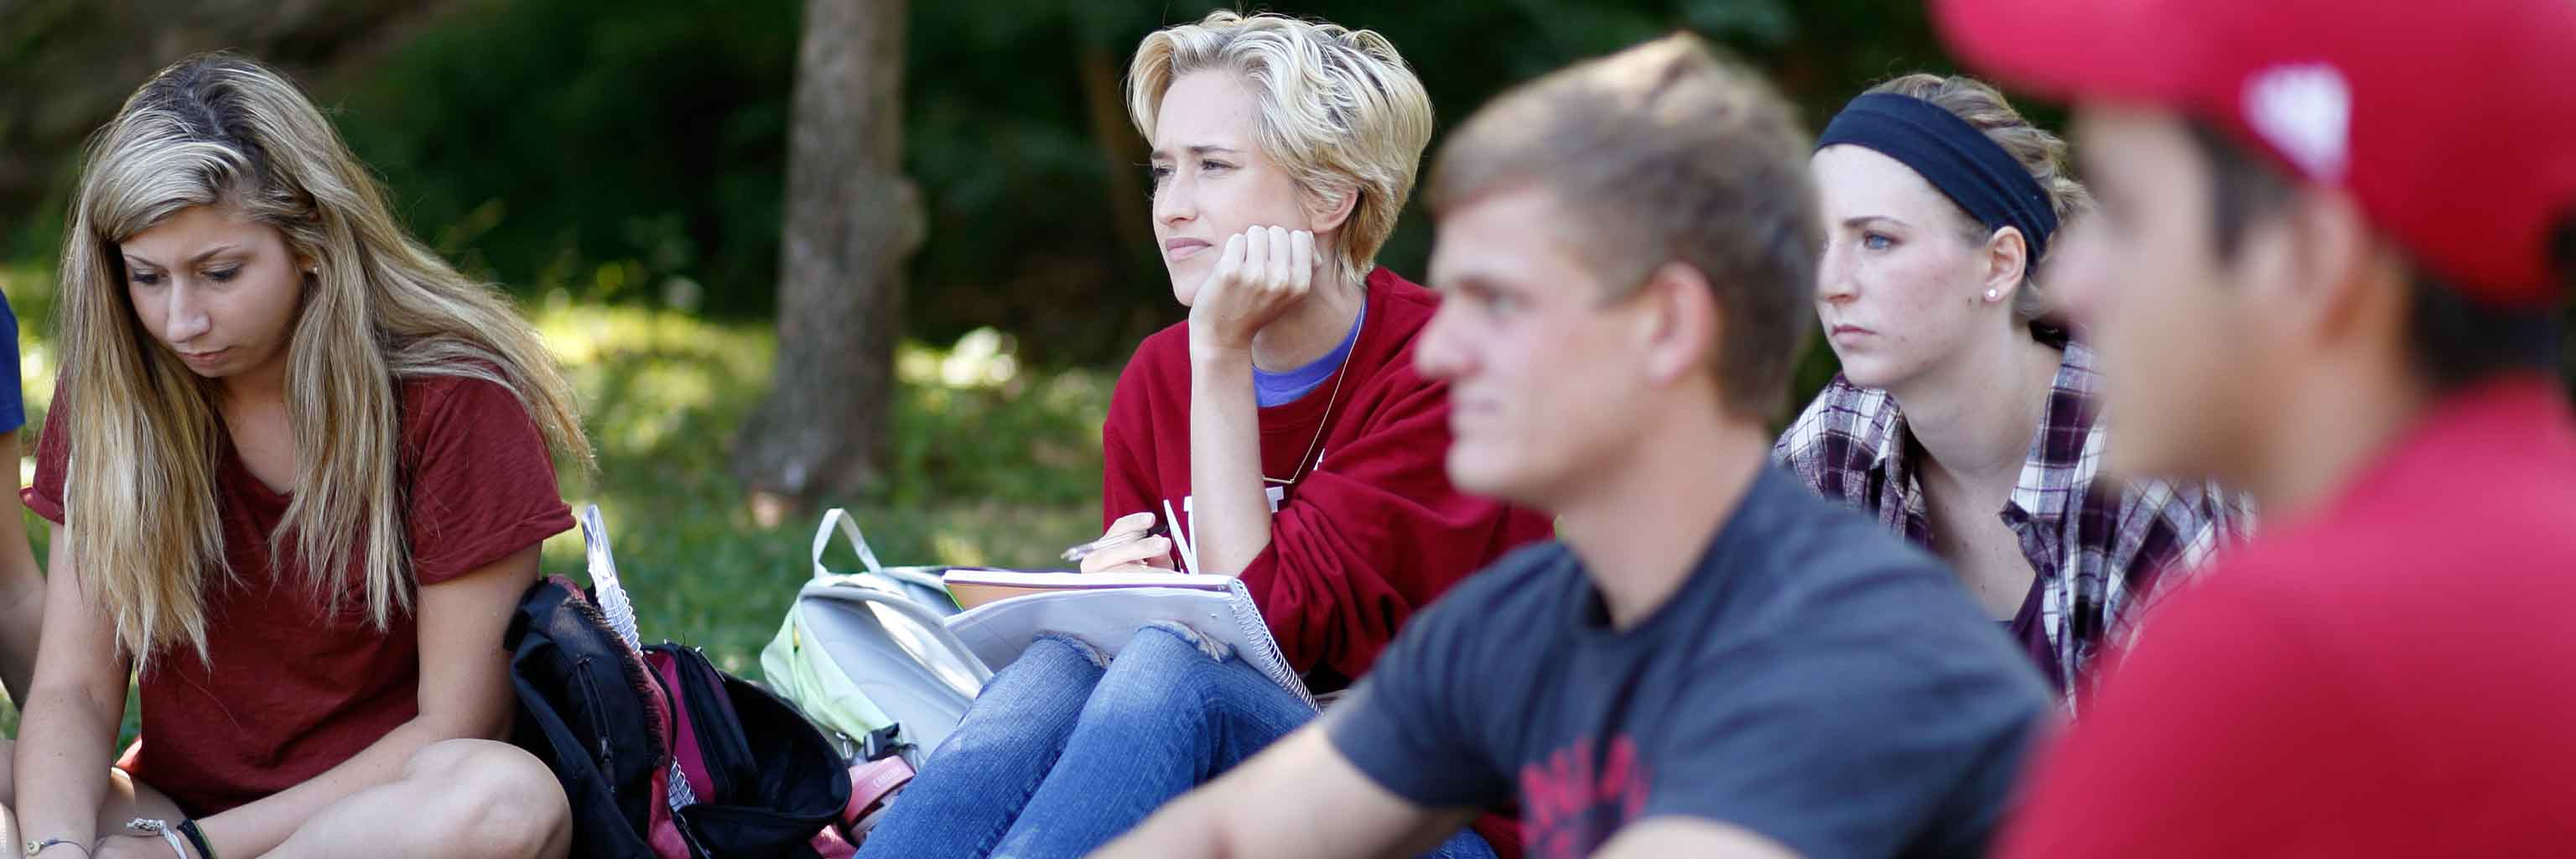 Students take part in a class session outdoors.